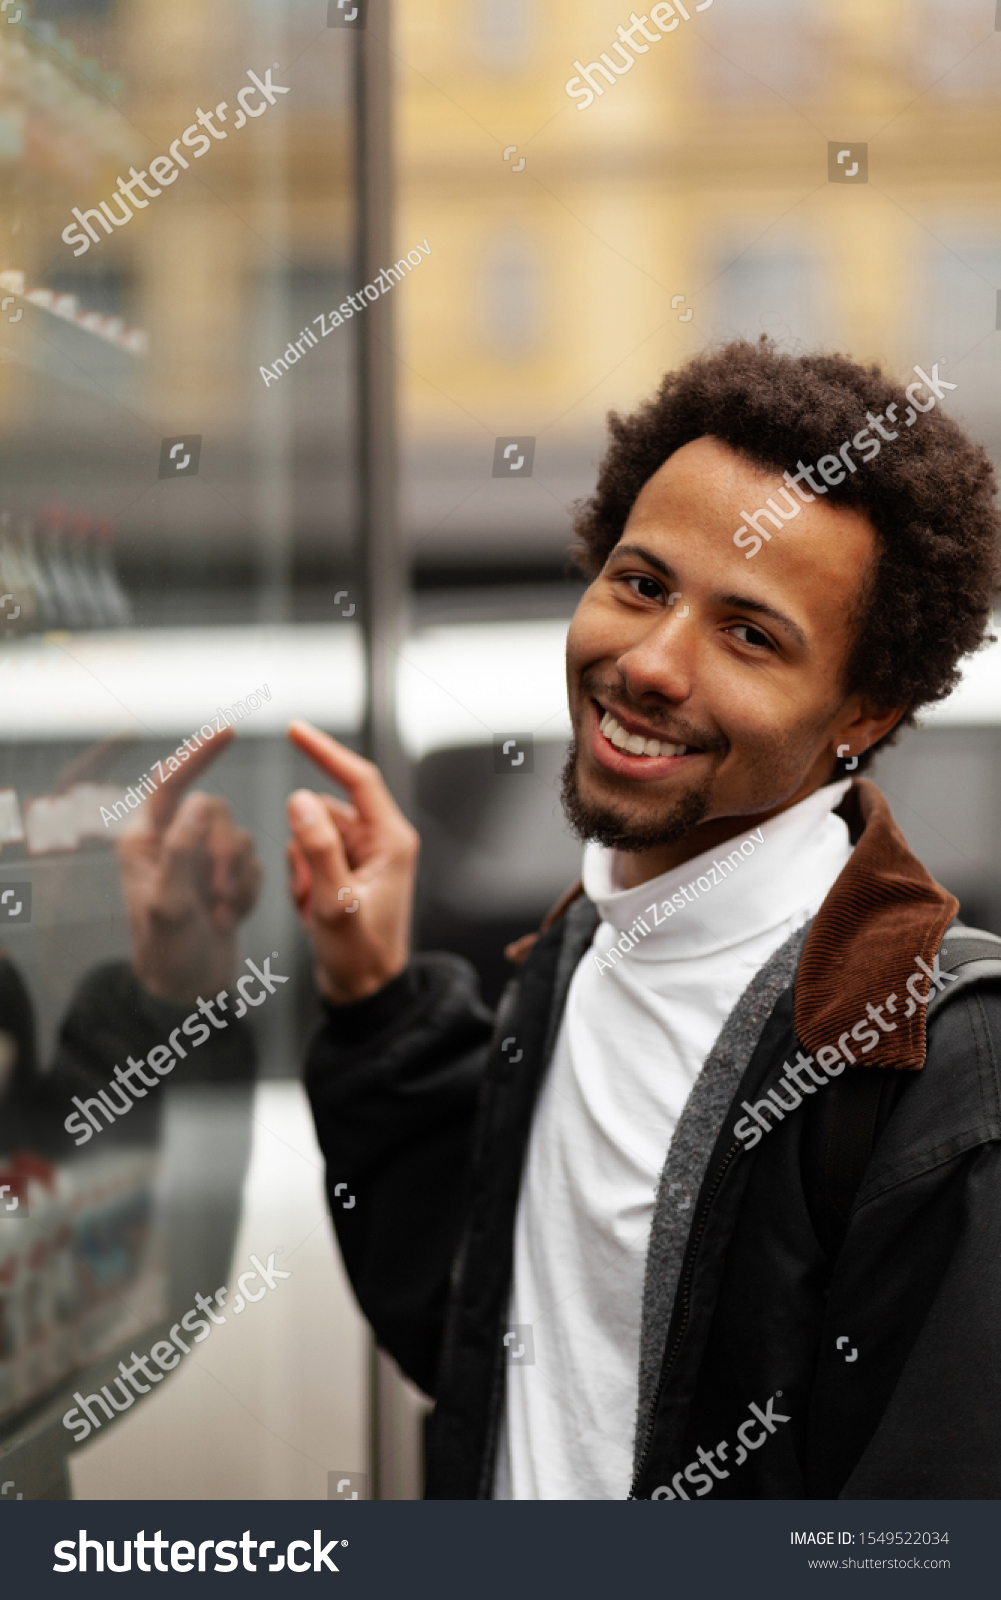 African man buys drink or sweets at vending machine outside. #1549522034